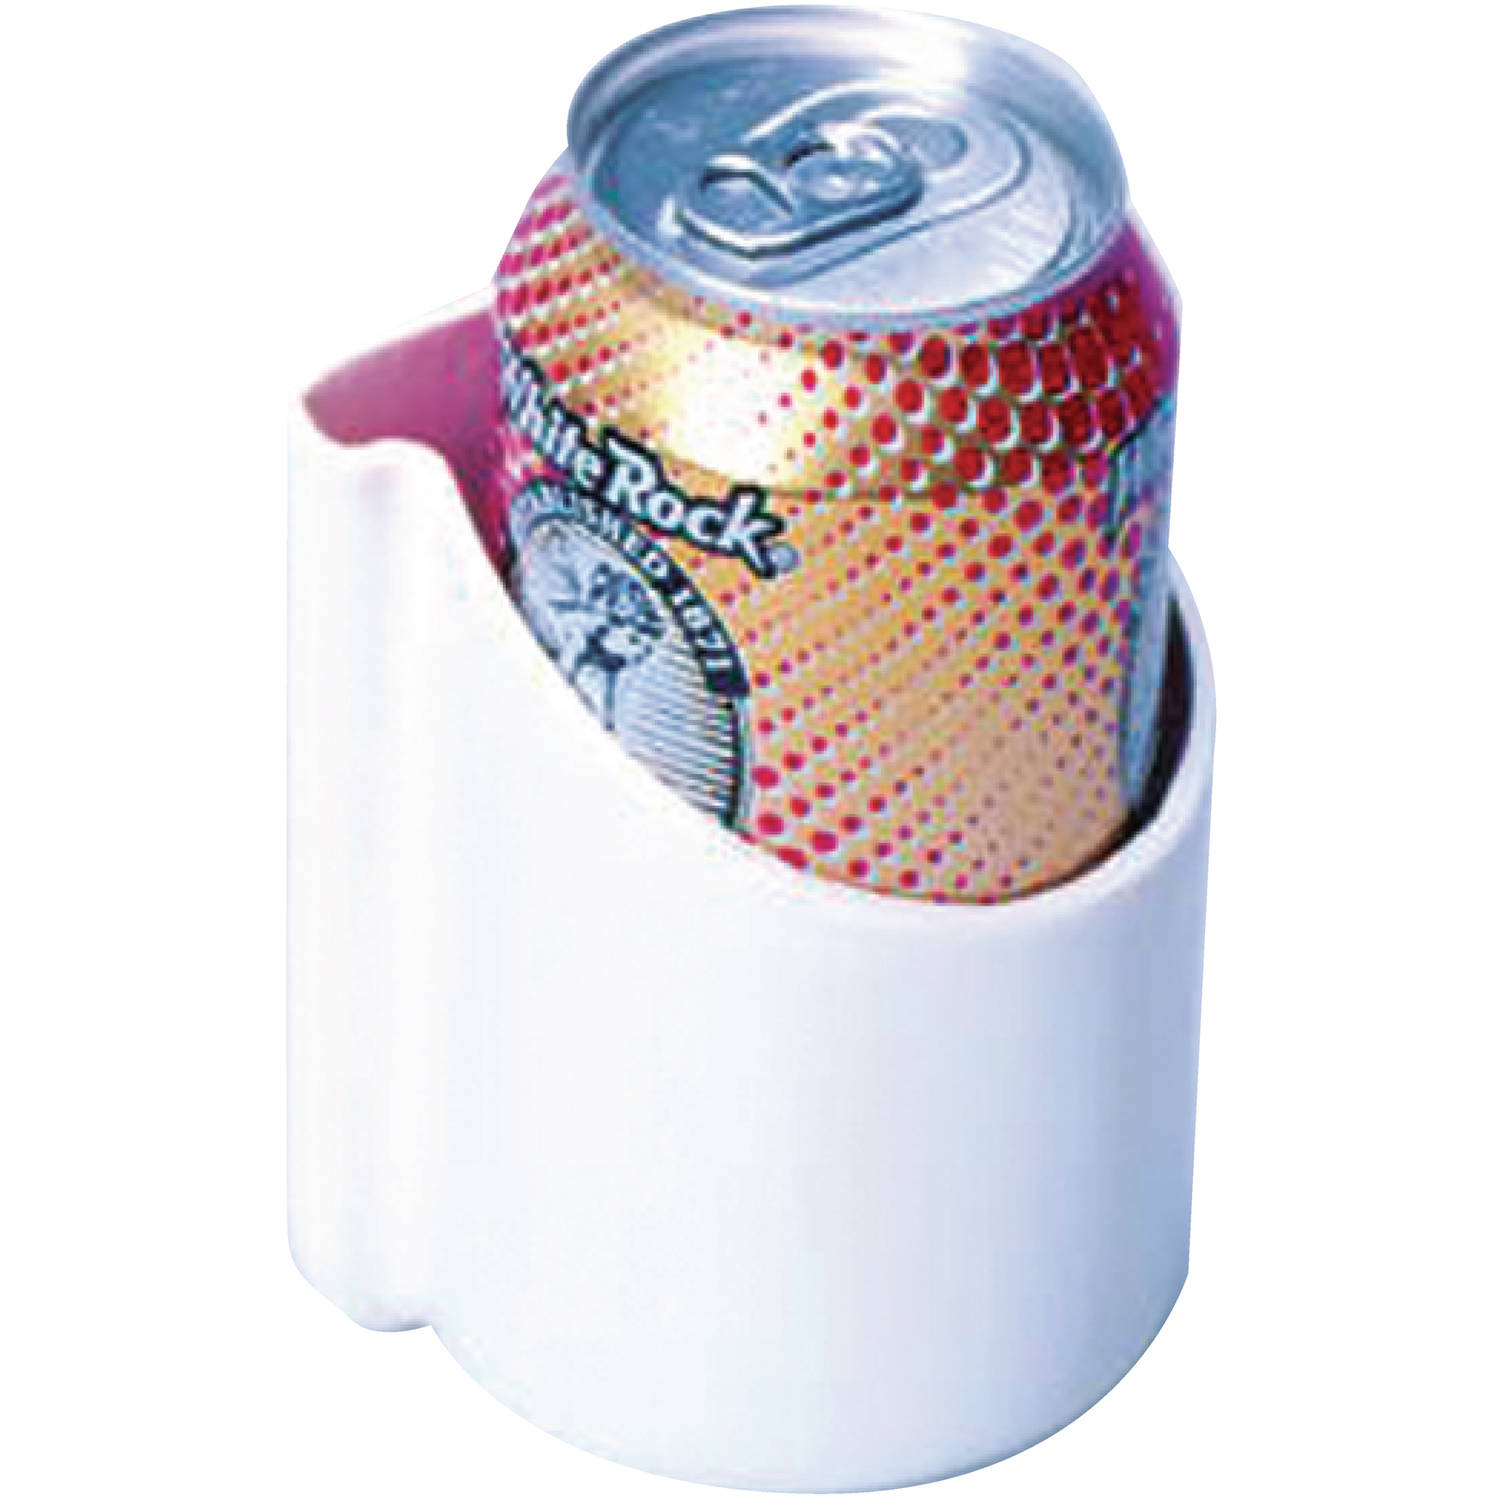 Beckson Soft-Mate Can and Air Horn Holder, White